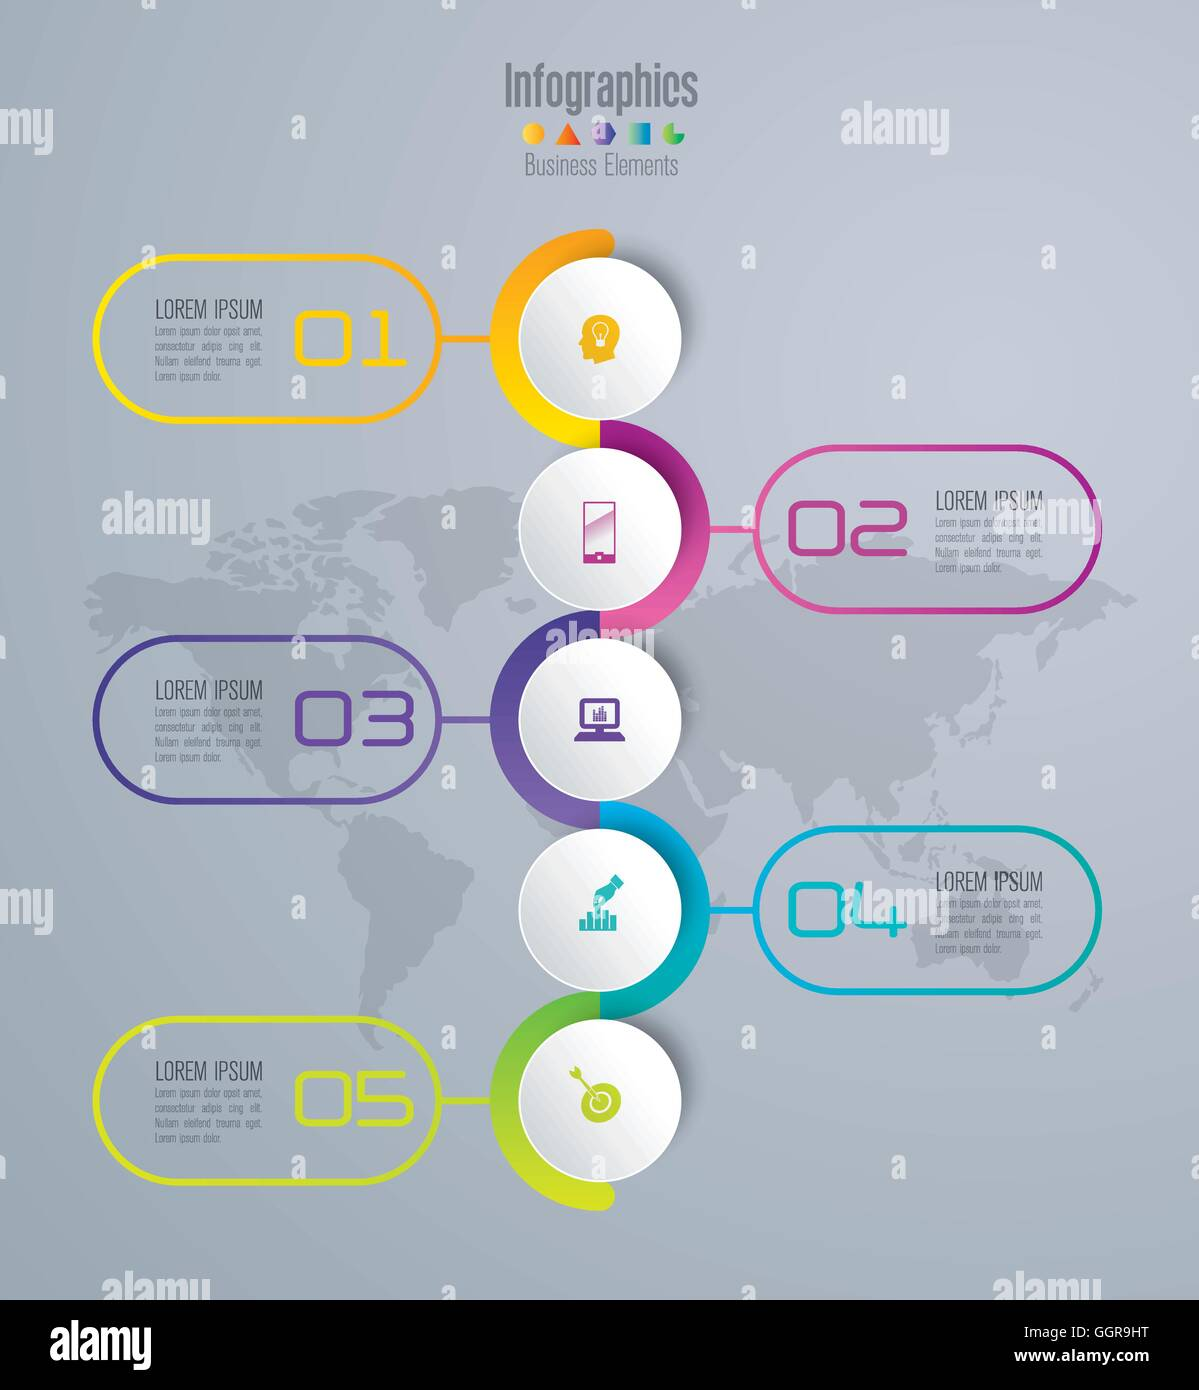 Infographics template vector illustration and business icons. - Stock Image